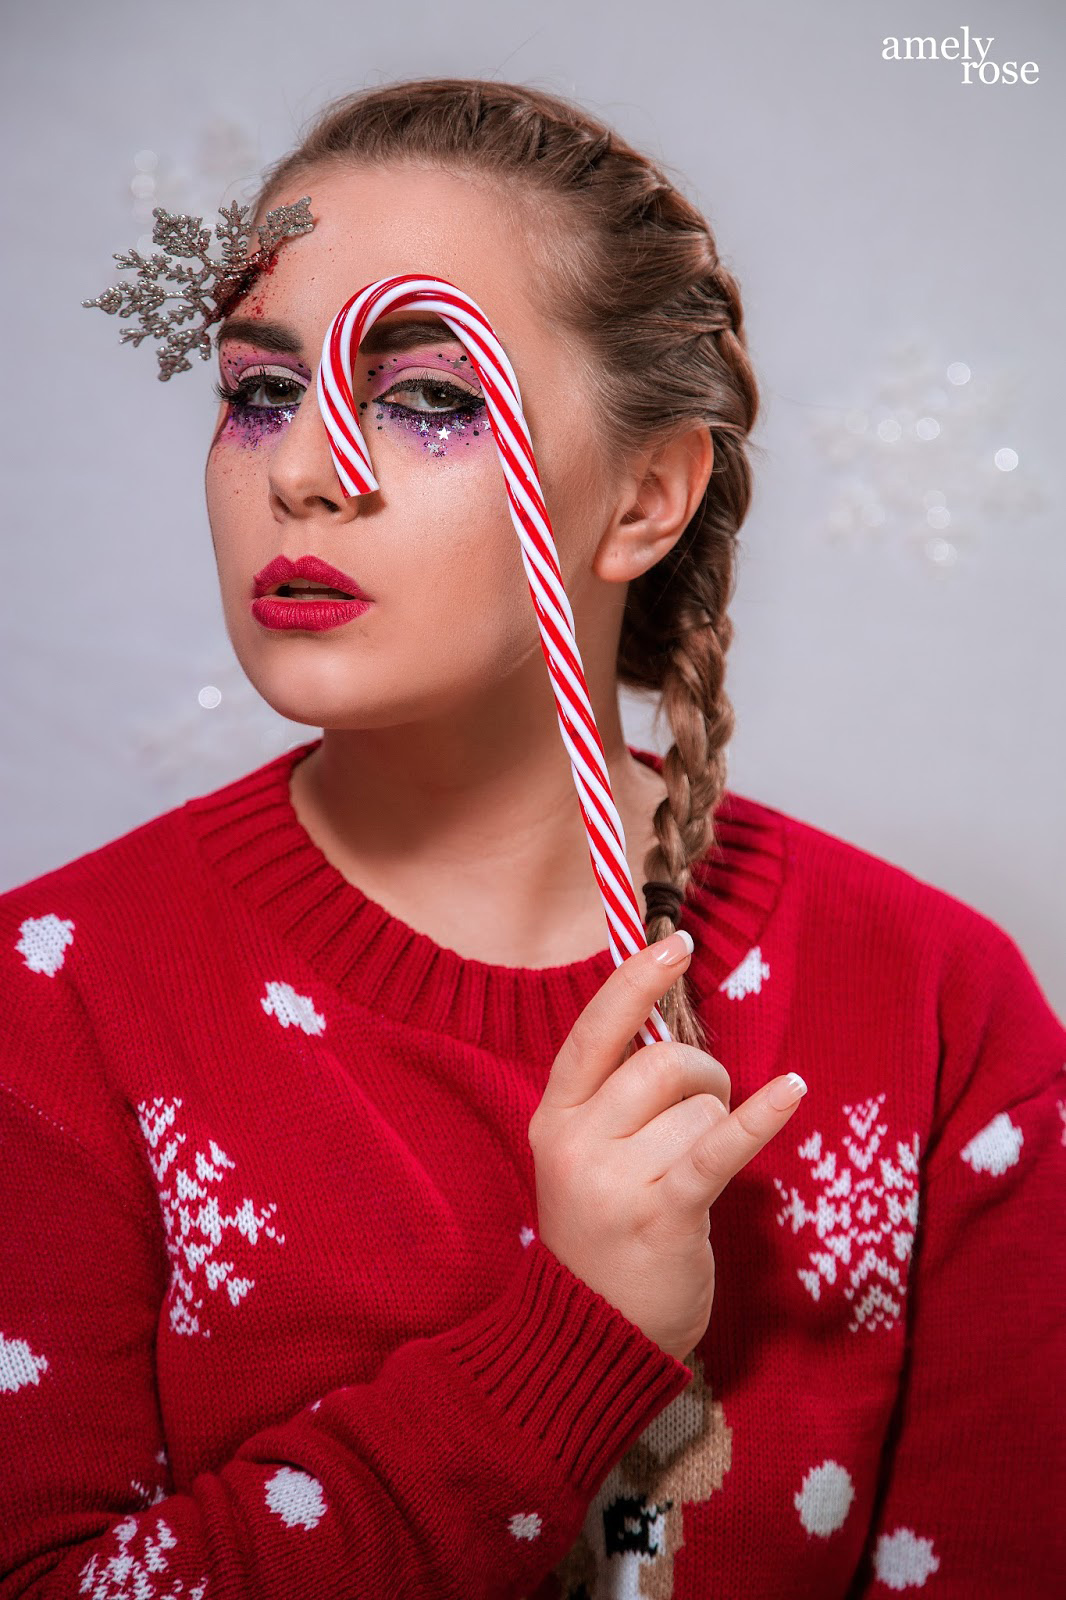 Amely Rose, german influencer und deutscher fashionblog christmas makeup tutorial horror sfx Amely Rose, german influencer und deutscher fashionblog christmas makeup tutorial horror sfx